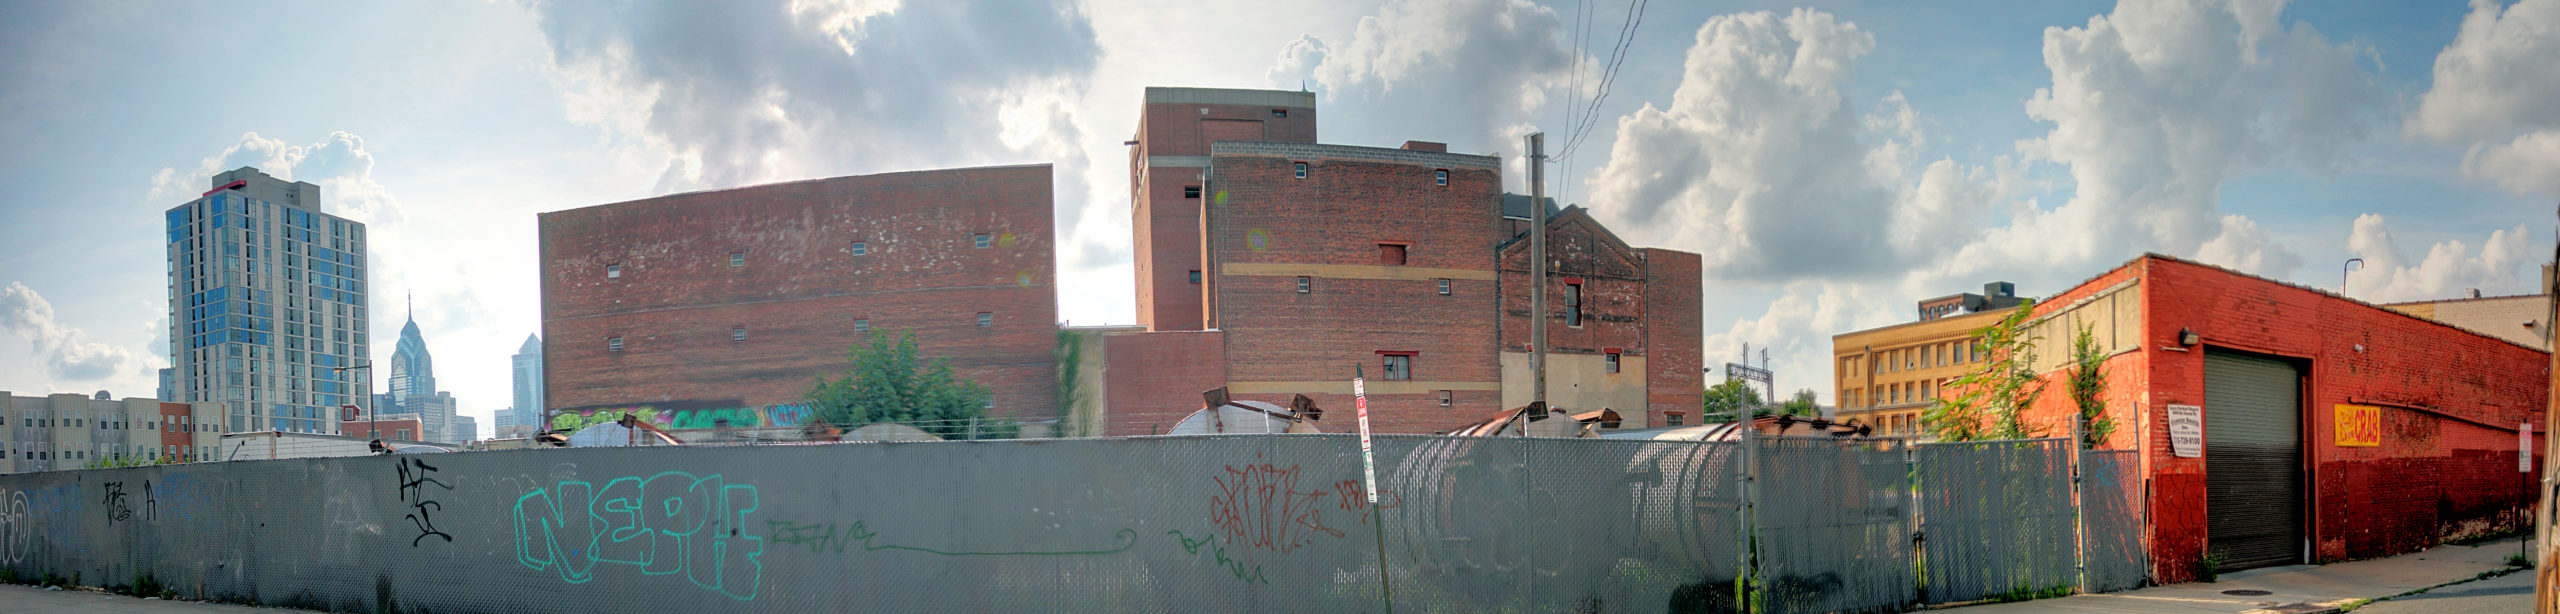 Esslinger's Brewery Complex View from 401 N 9th St Philadelphia, PA Copyright 2019, Bob Bruhin. All rights reserved.